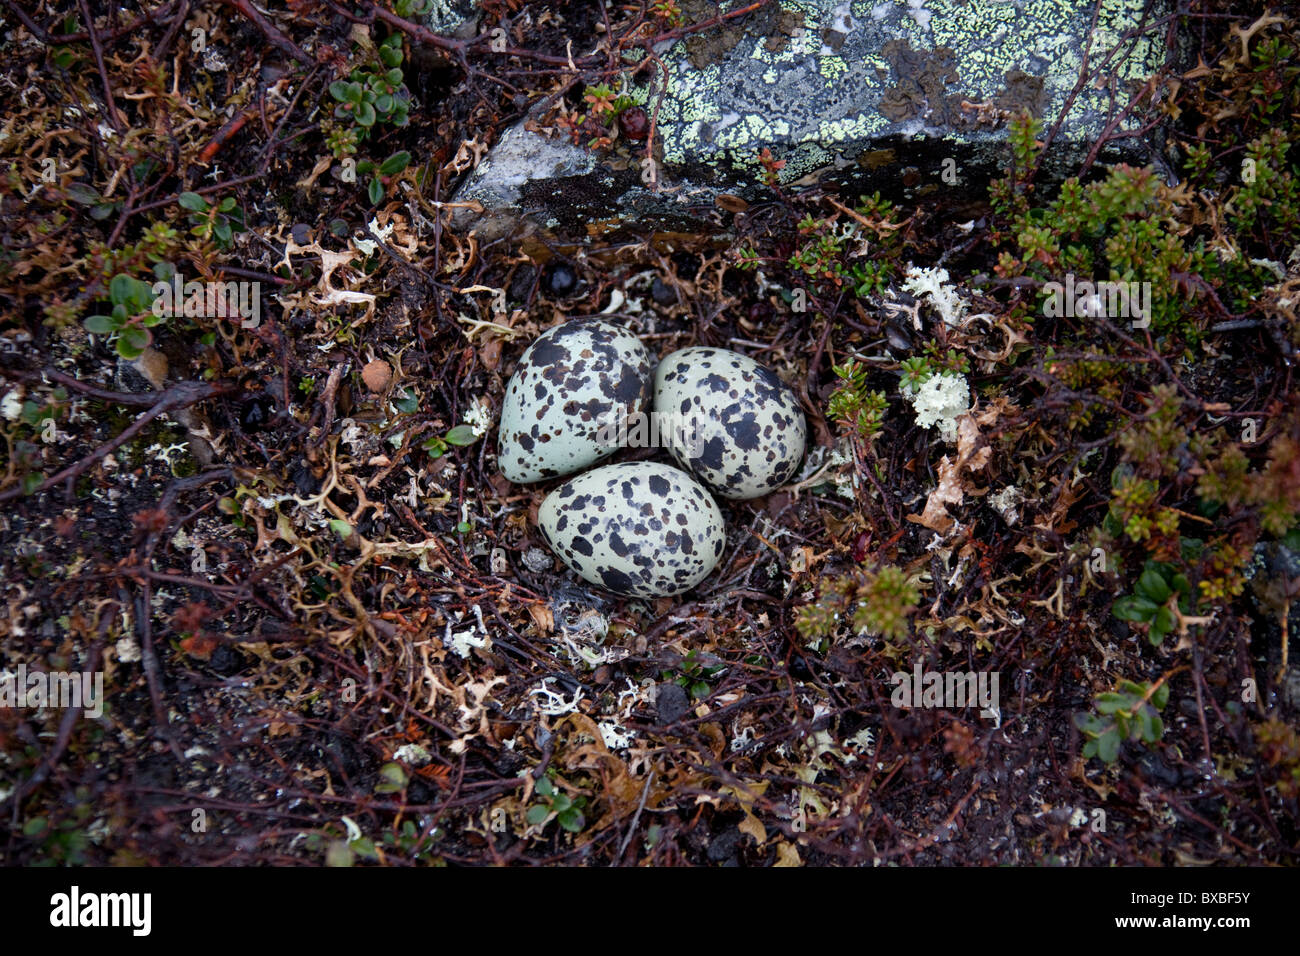 Eurasian Dotterel (Charadrius morinellus) spotted eggs in nest on the tundra, Sweden - Stock Image